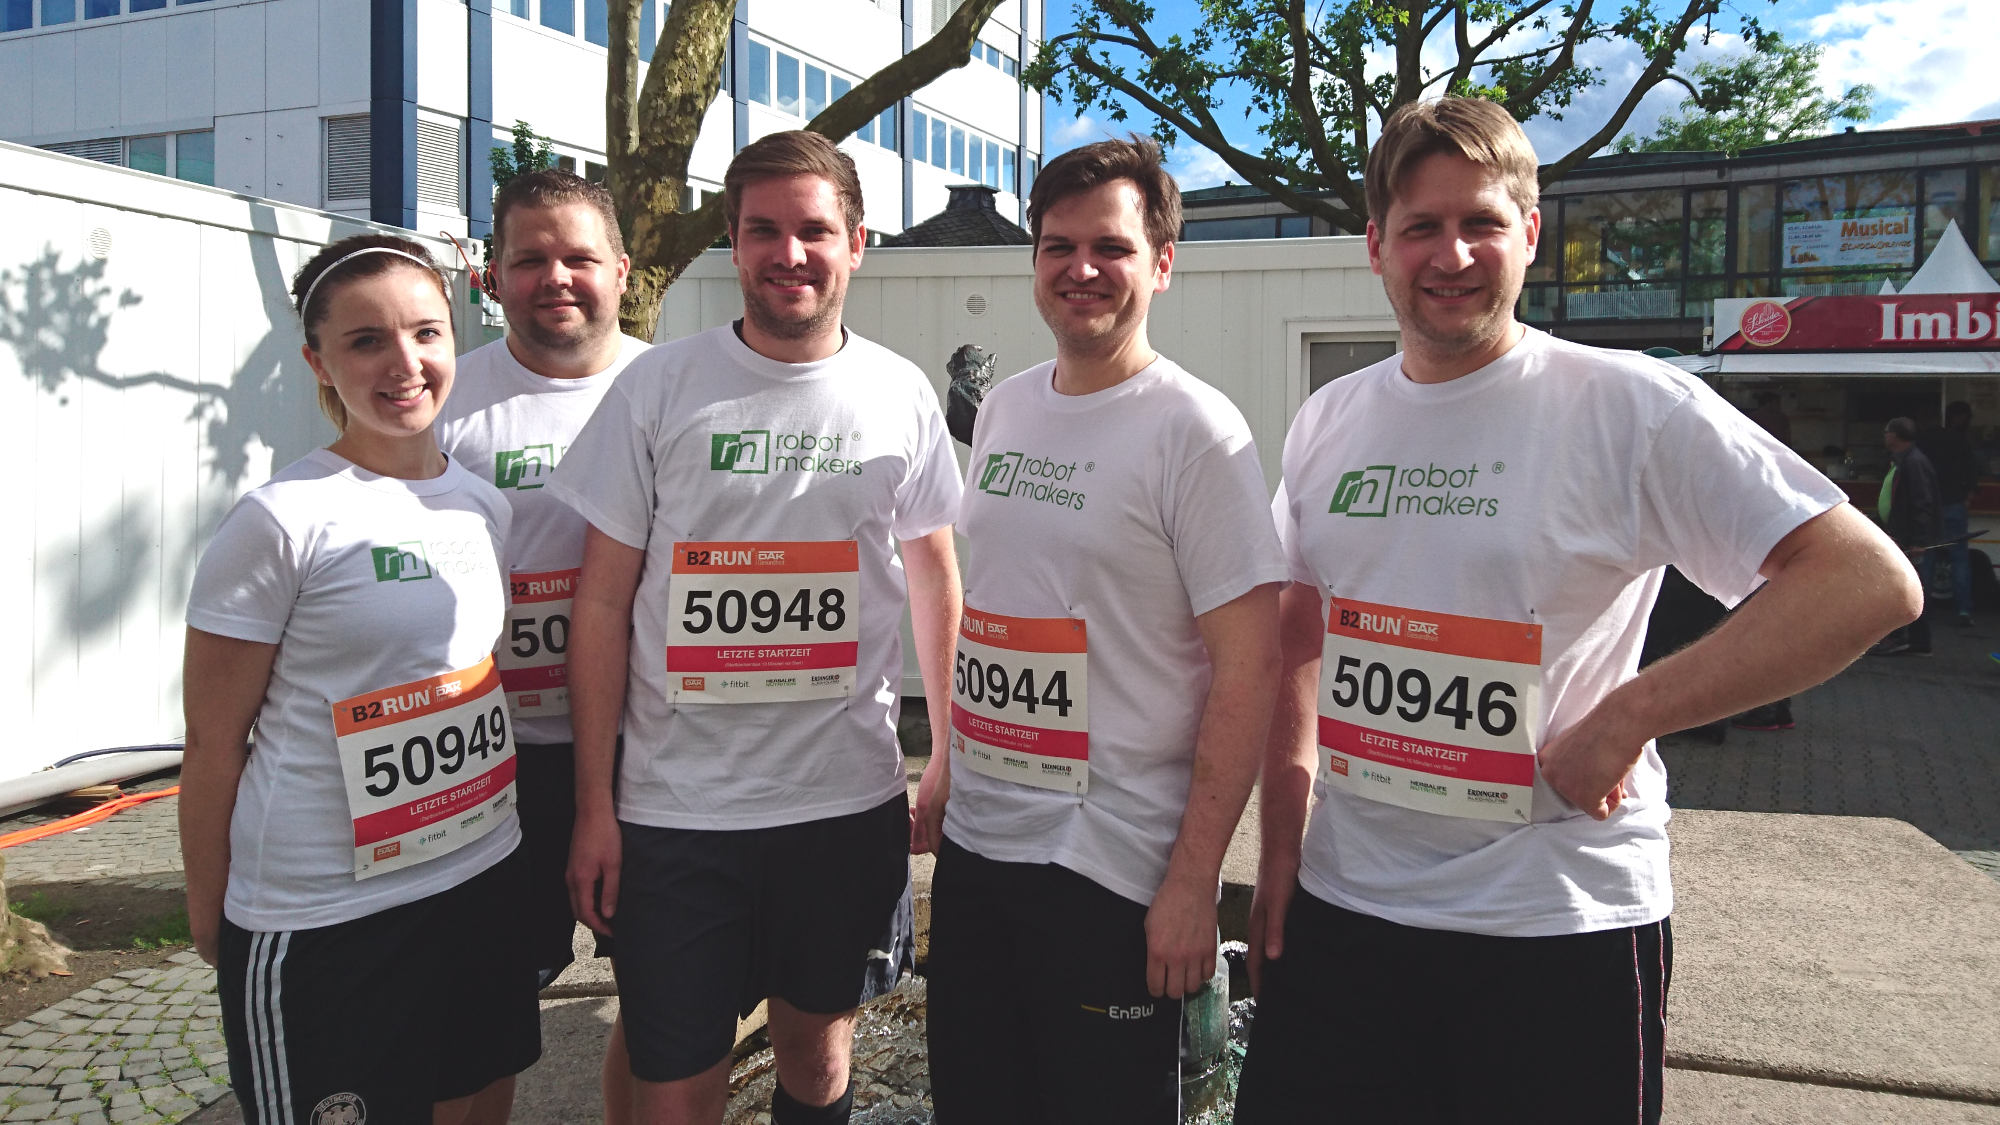 The running team of the Robot Makers GmbH before the start